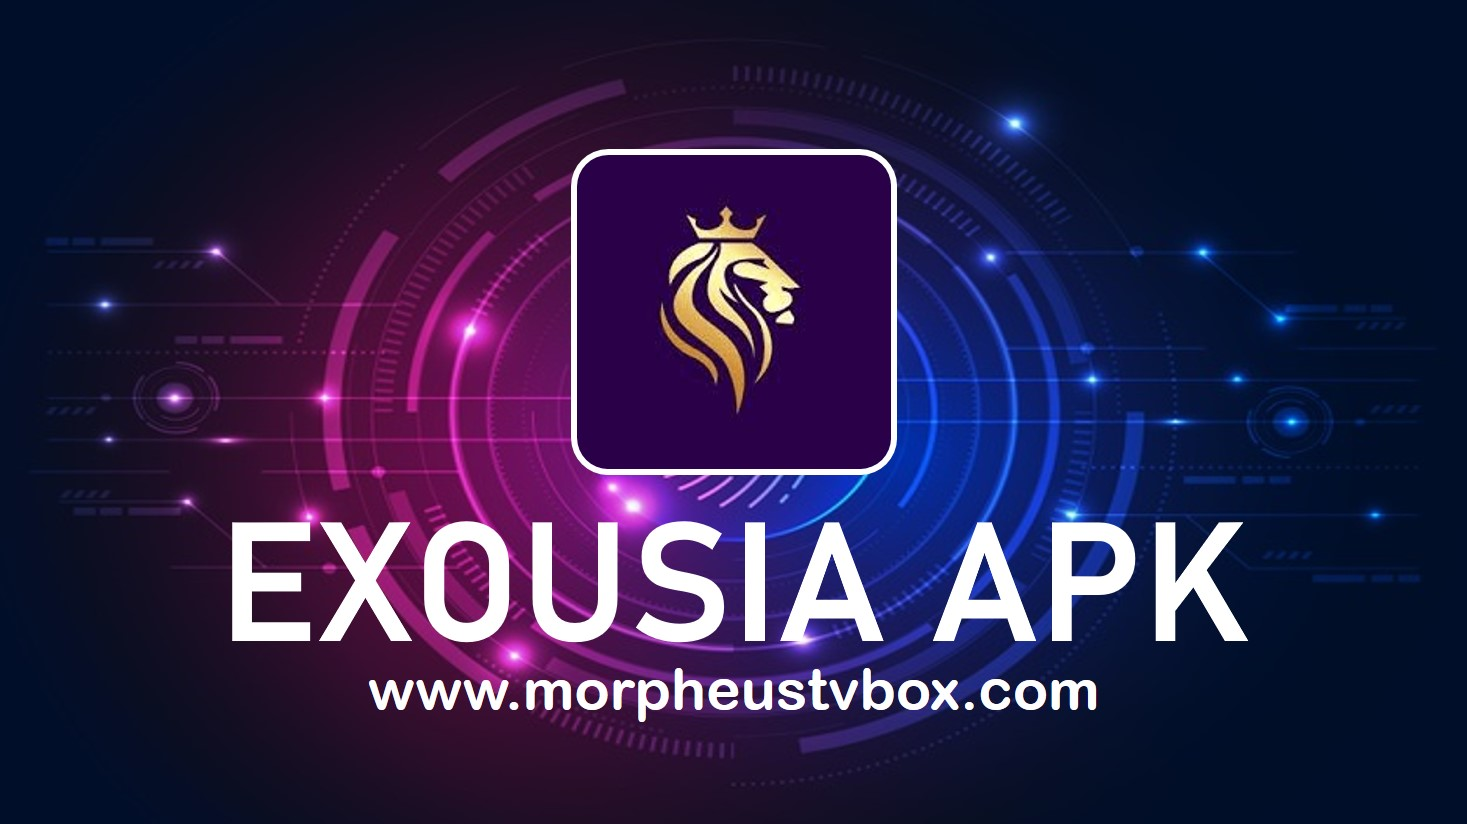 Exousia apk download